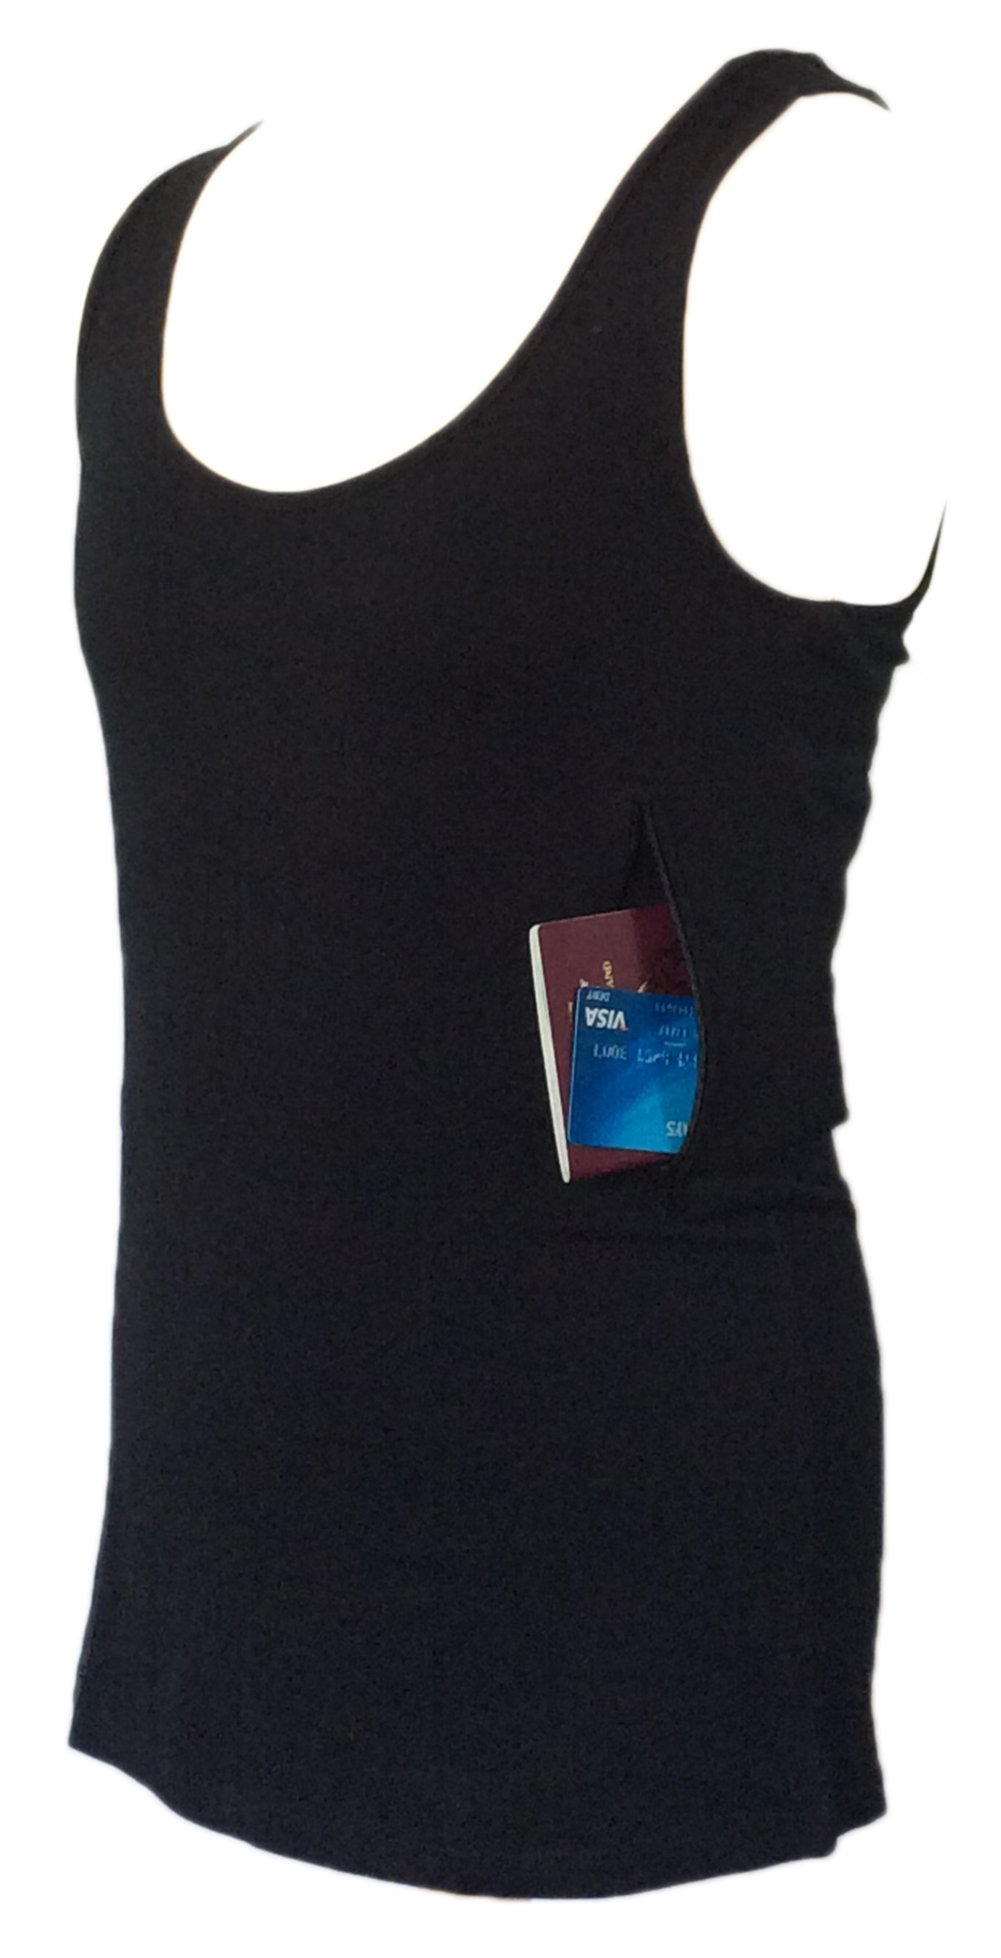 Clever Travel Companion Unisex Tank Top with Two Secret Pockets, Black, Medium